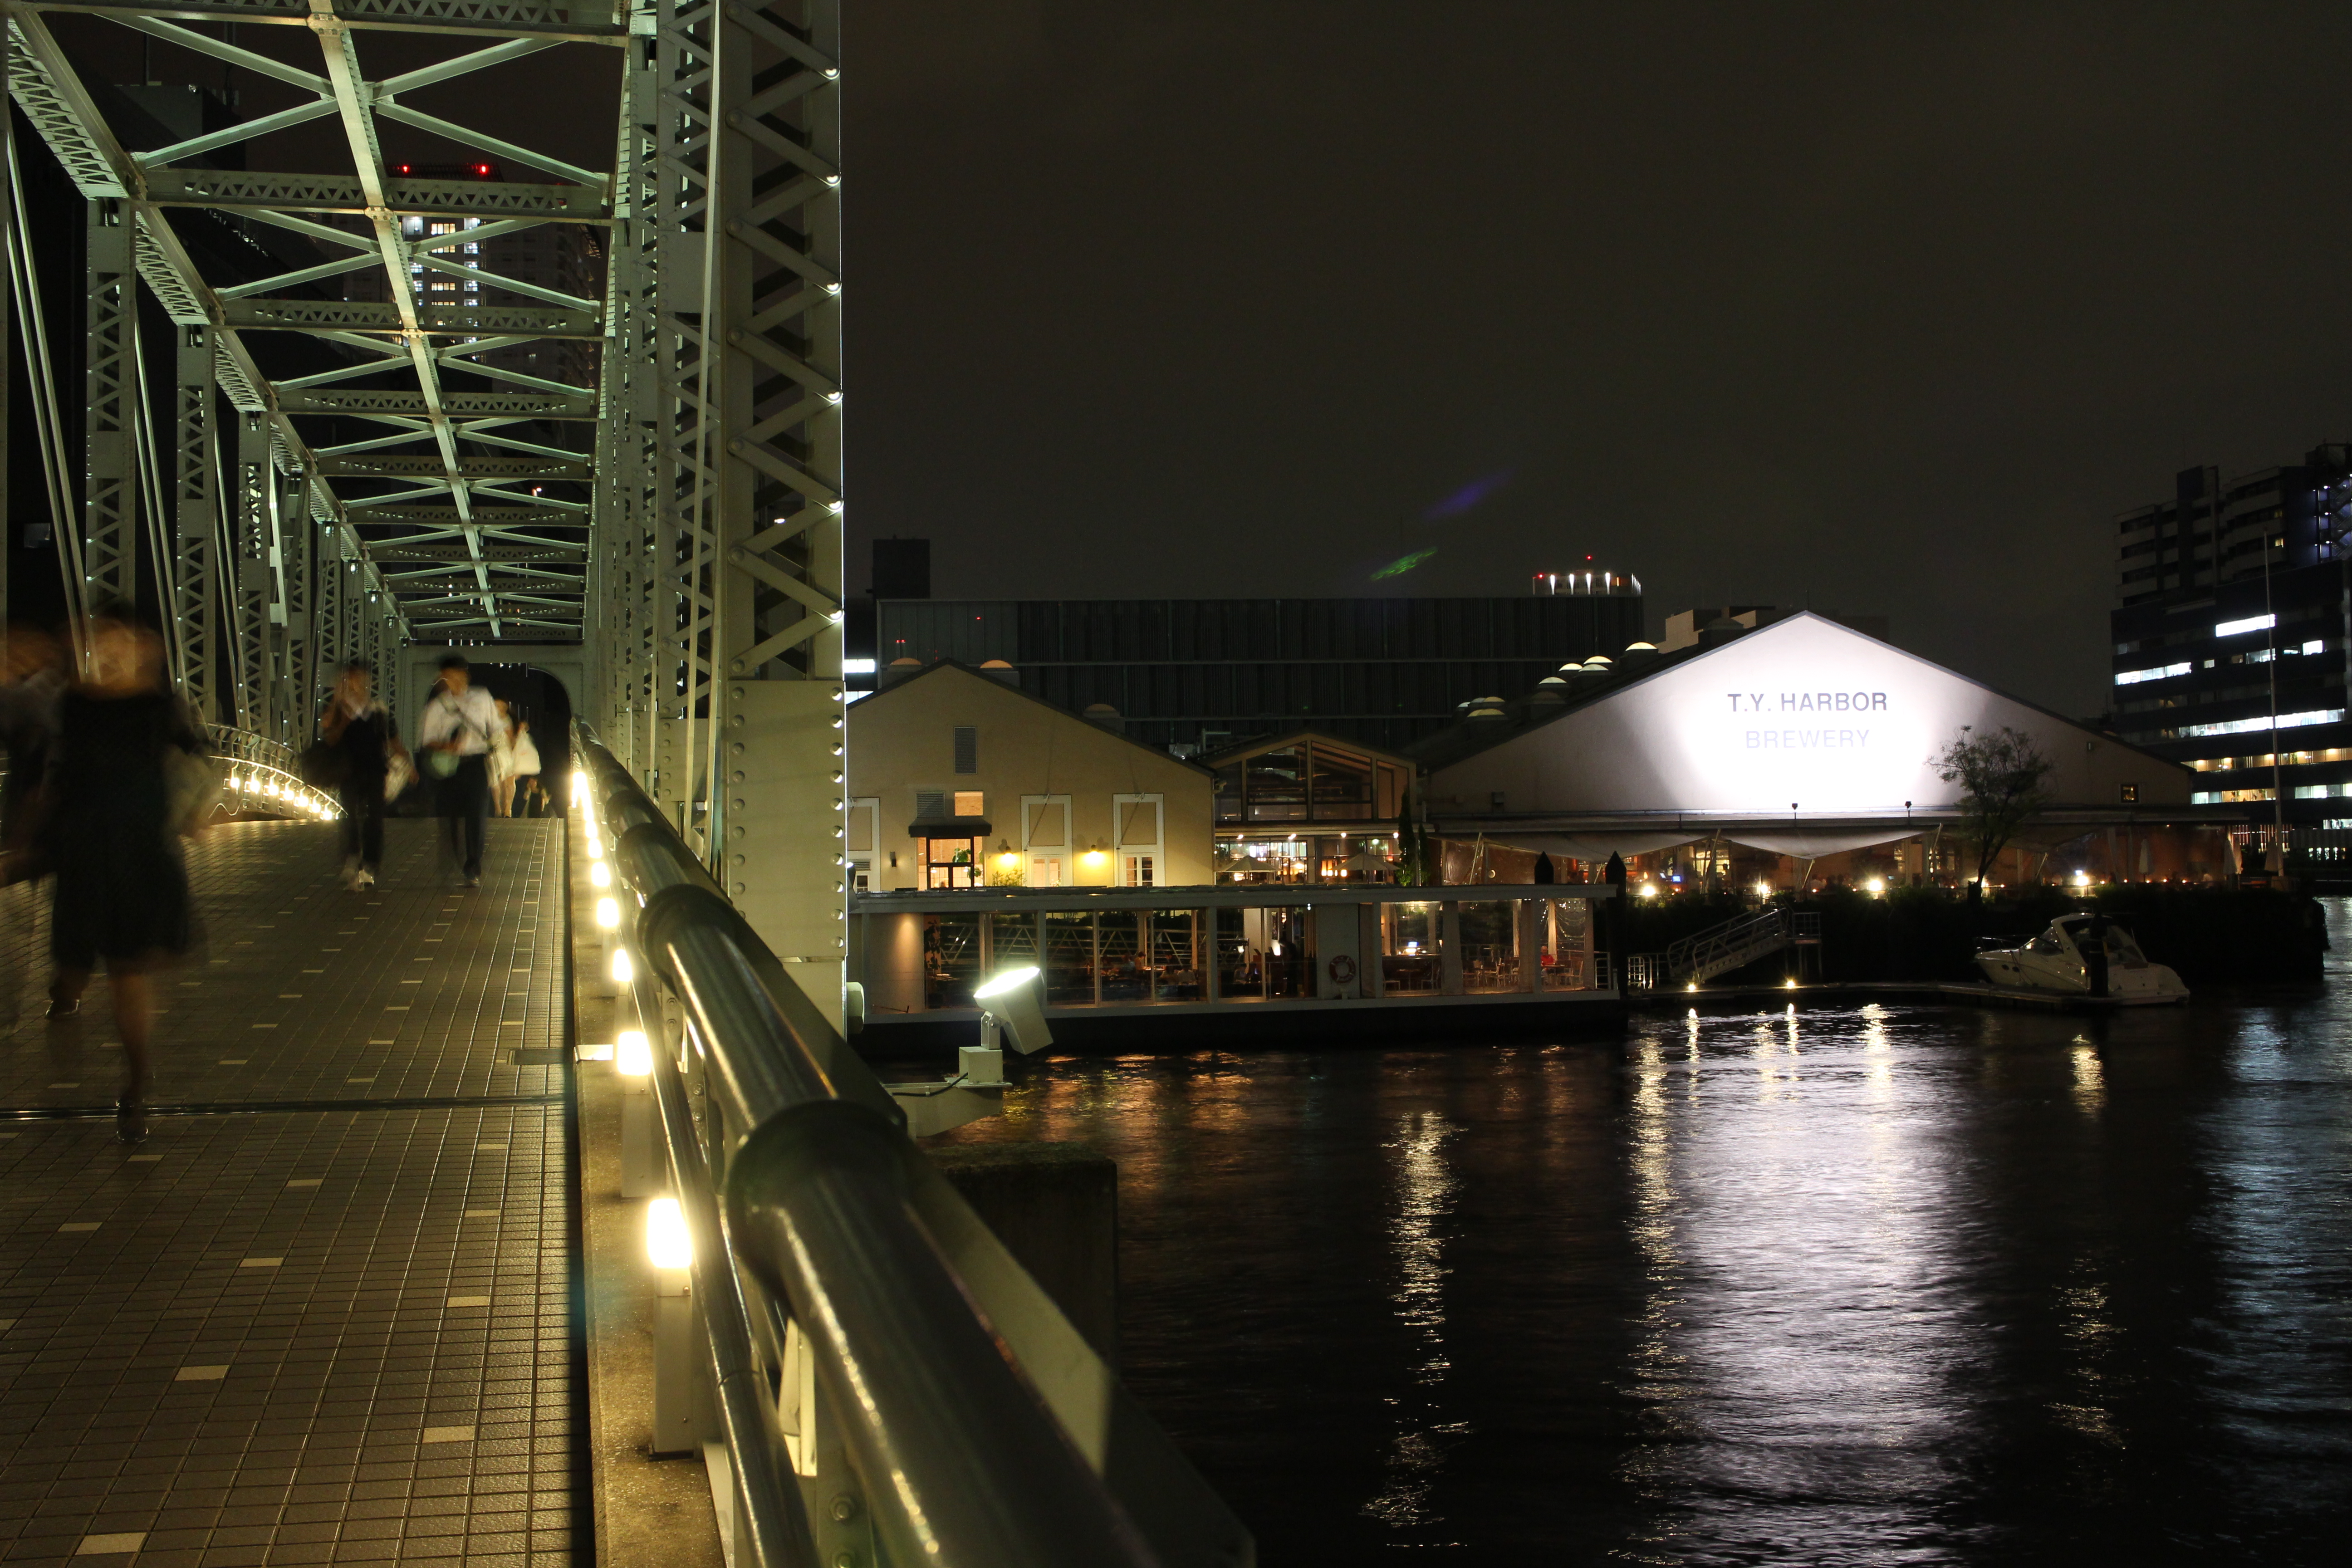 <b>EOS M / EF-M 18-55mm F3.5-5.6 IS STM / 約6.2MB / 5,184×3,456 / 1/1.2秒 / F8 / -0.3EV / ISO800 / 24mm</b>